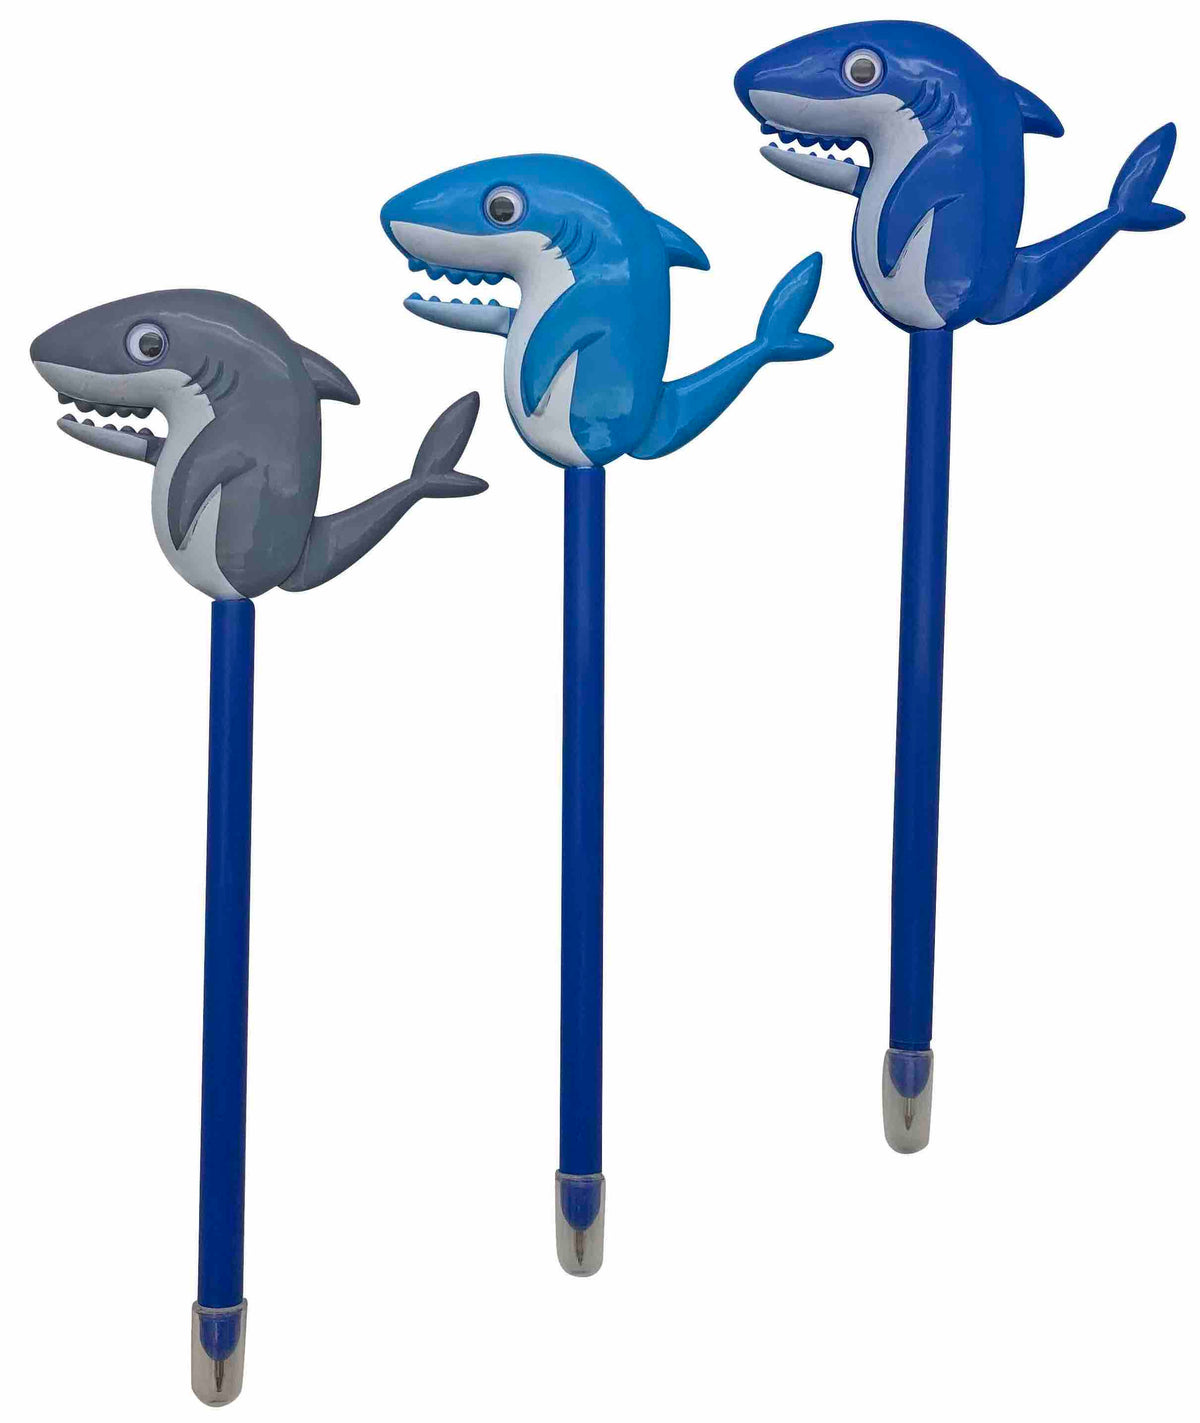 Shark Motion Pens, Set of 3